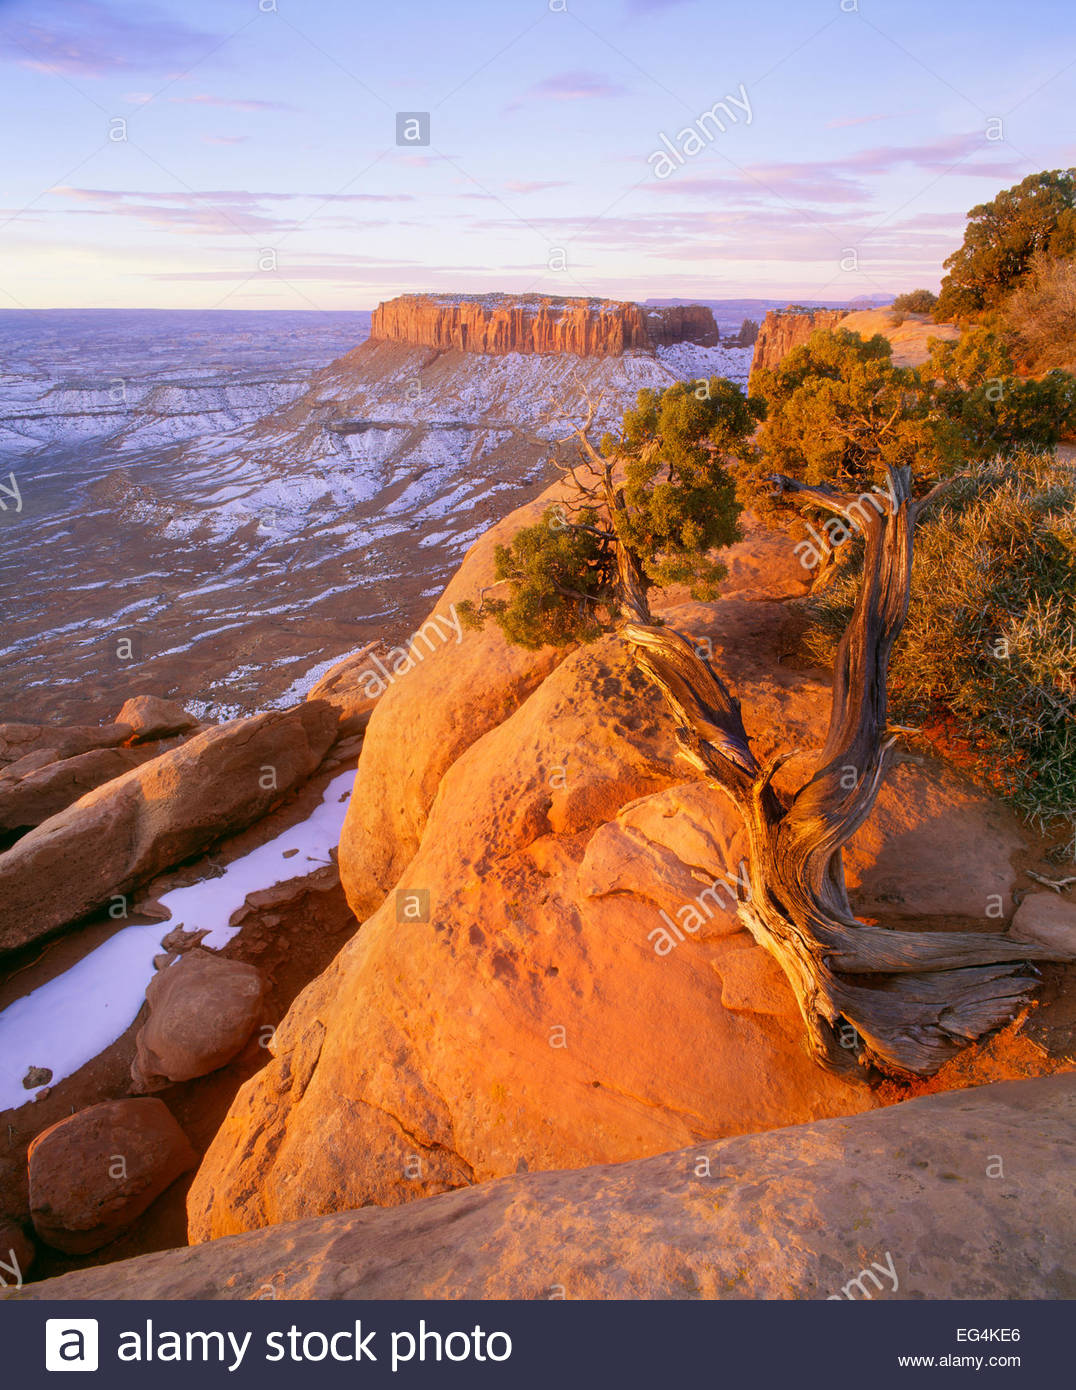 Winter-Sonnenaufgang am Grandview Point.  Island In The Sky.  Canyonlands National Park, Utah. Stockbild